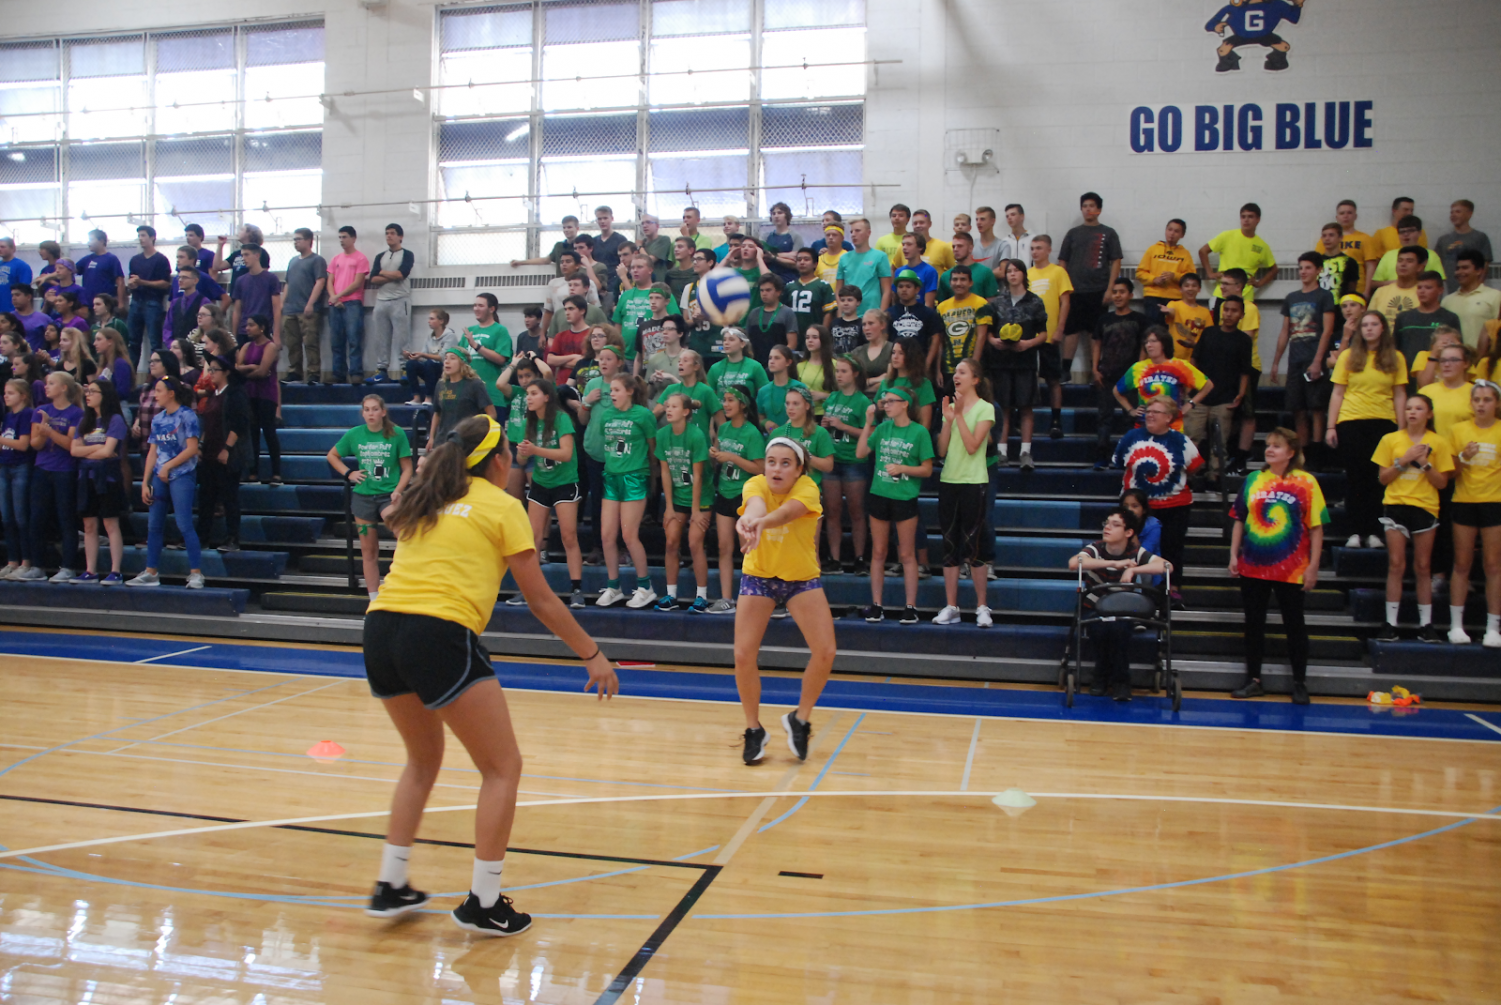 Emilee Rodriguez '22 (left) and Madeline Ries '22 (right) pass back and forth while competing in the sports relay.